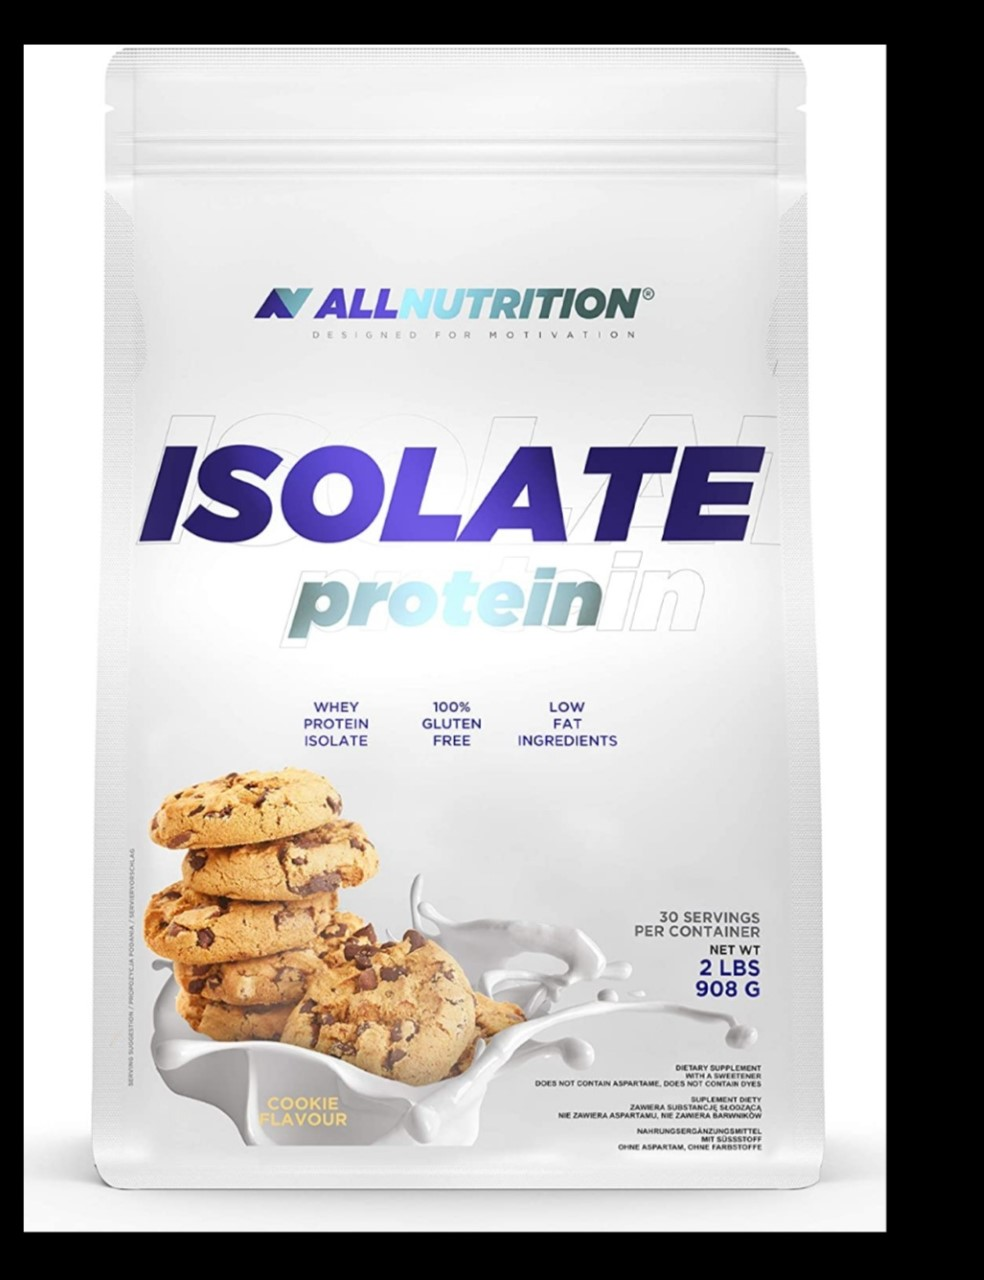 All Nutrition Isolate protein bag 908 G -Cookies and Banana